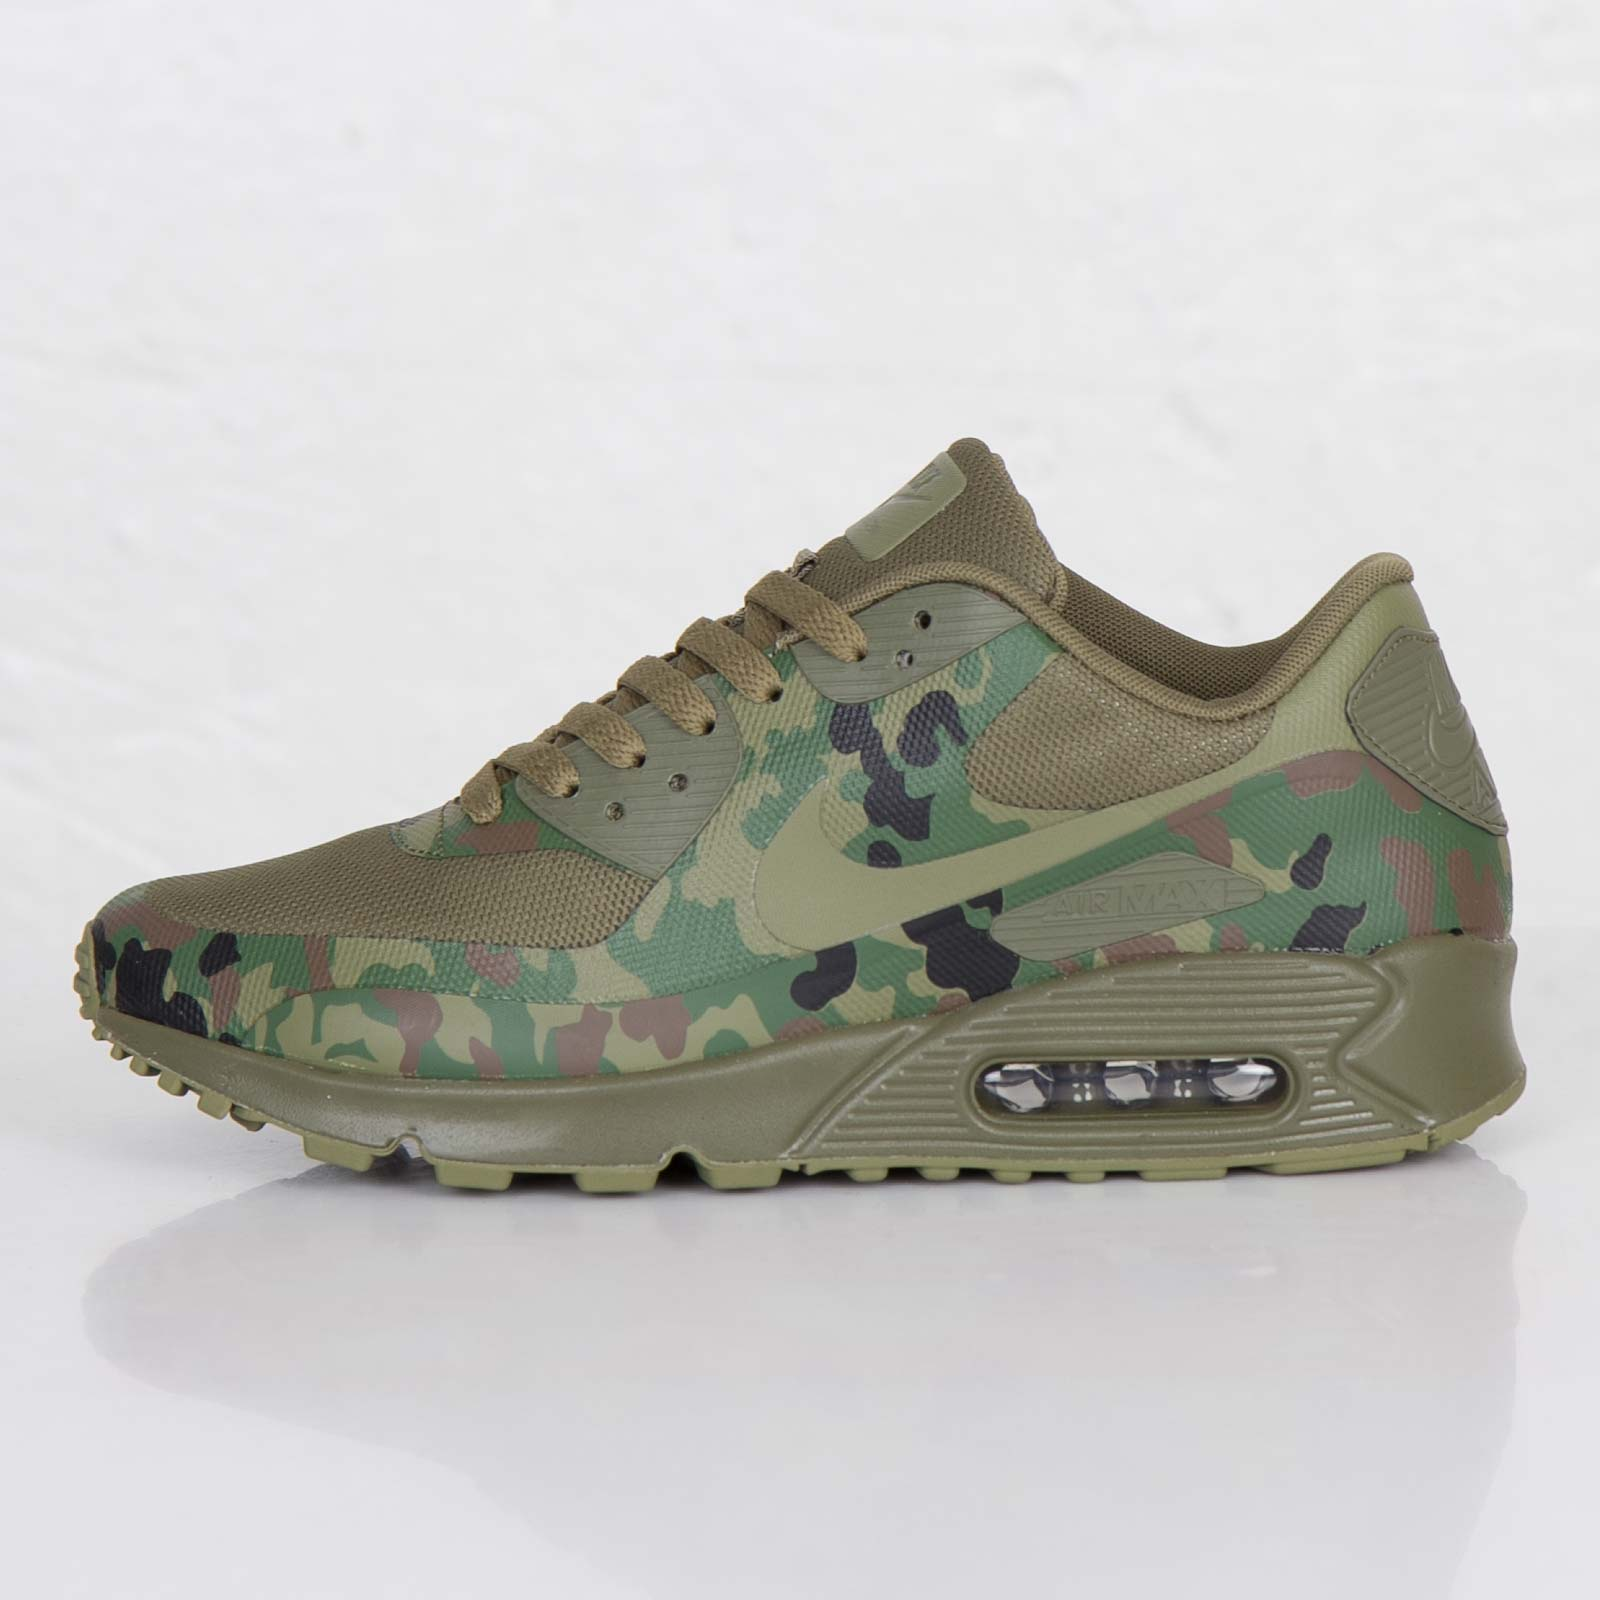 60ce892cdfa Nike Air Max 90 Japan SP - 624728-220 - Sneakersnstuff | sneakers ...